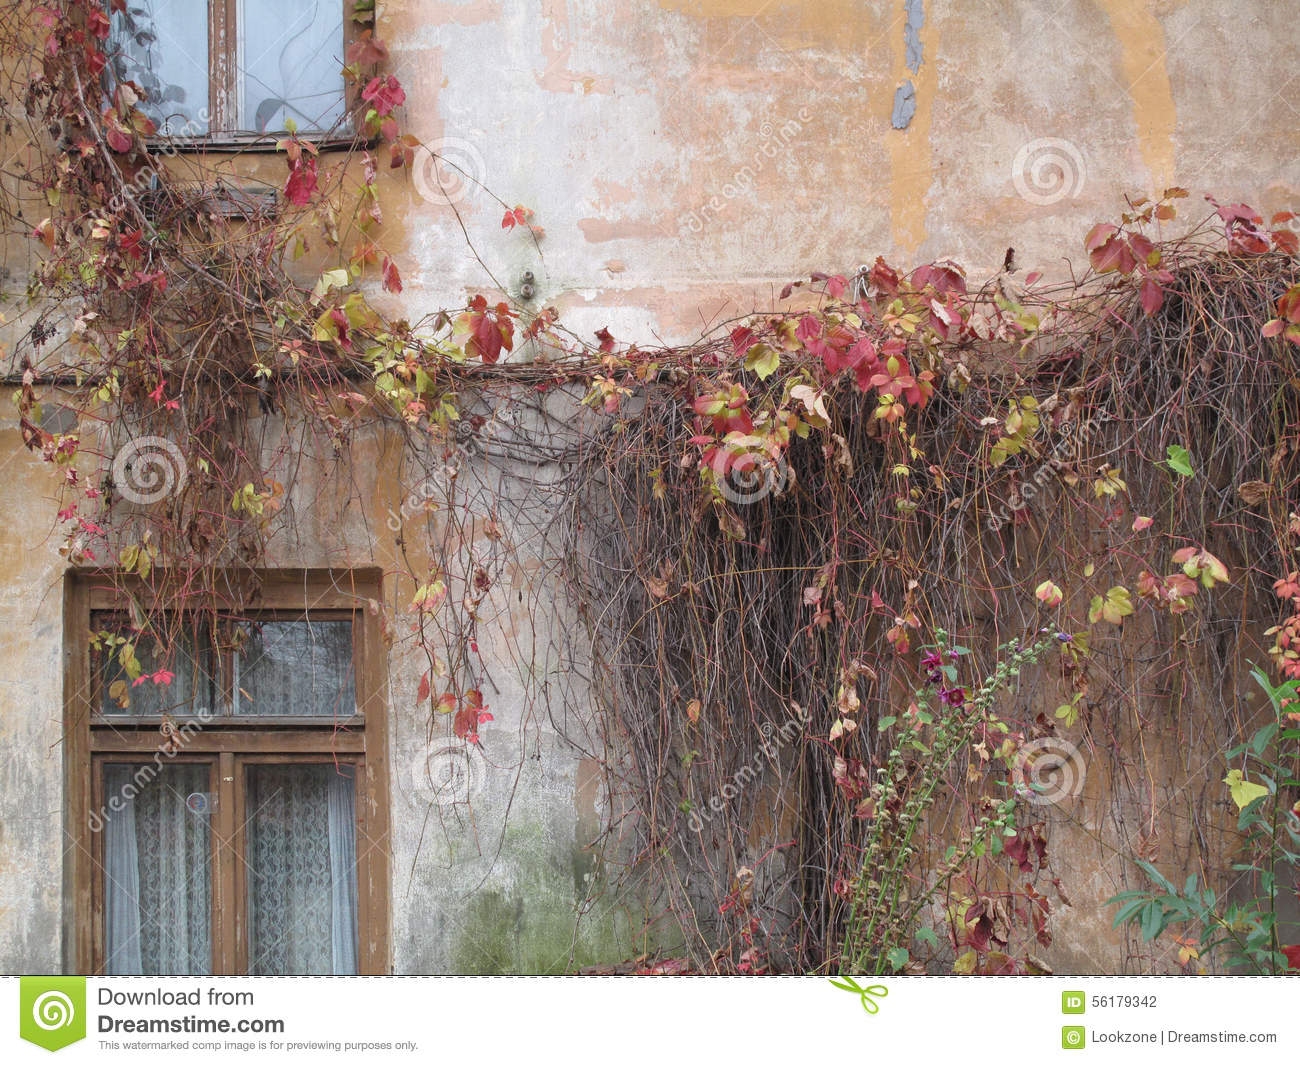 Climbing vines for walls - Thick Climbing Vines On An Old Town Building Wall Stock Photography